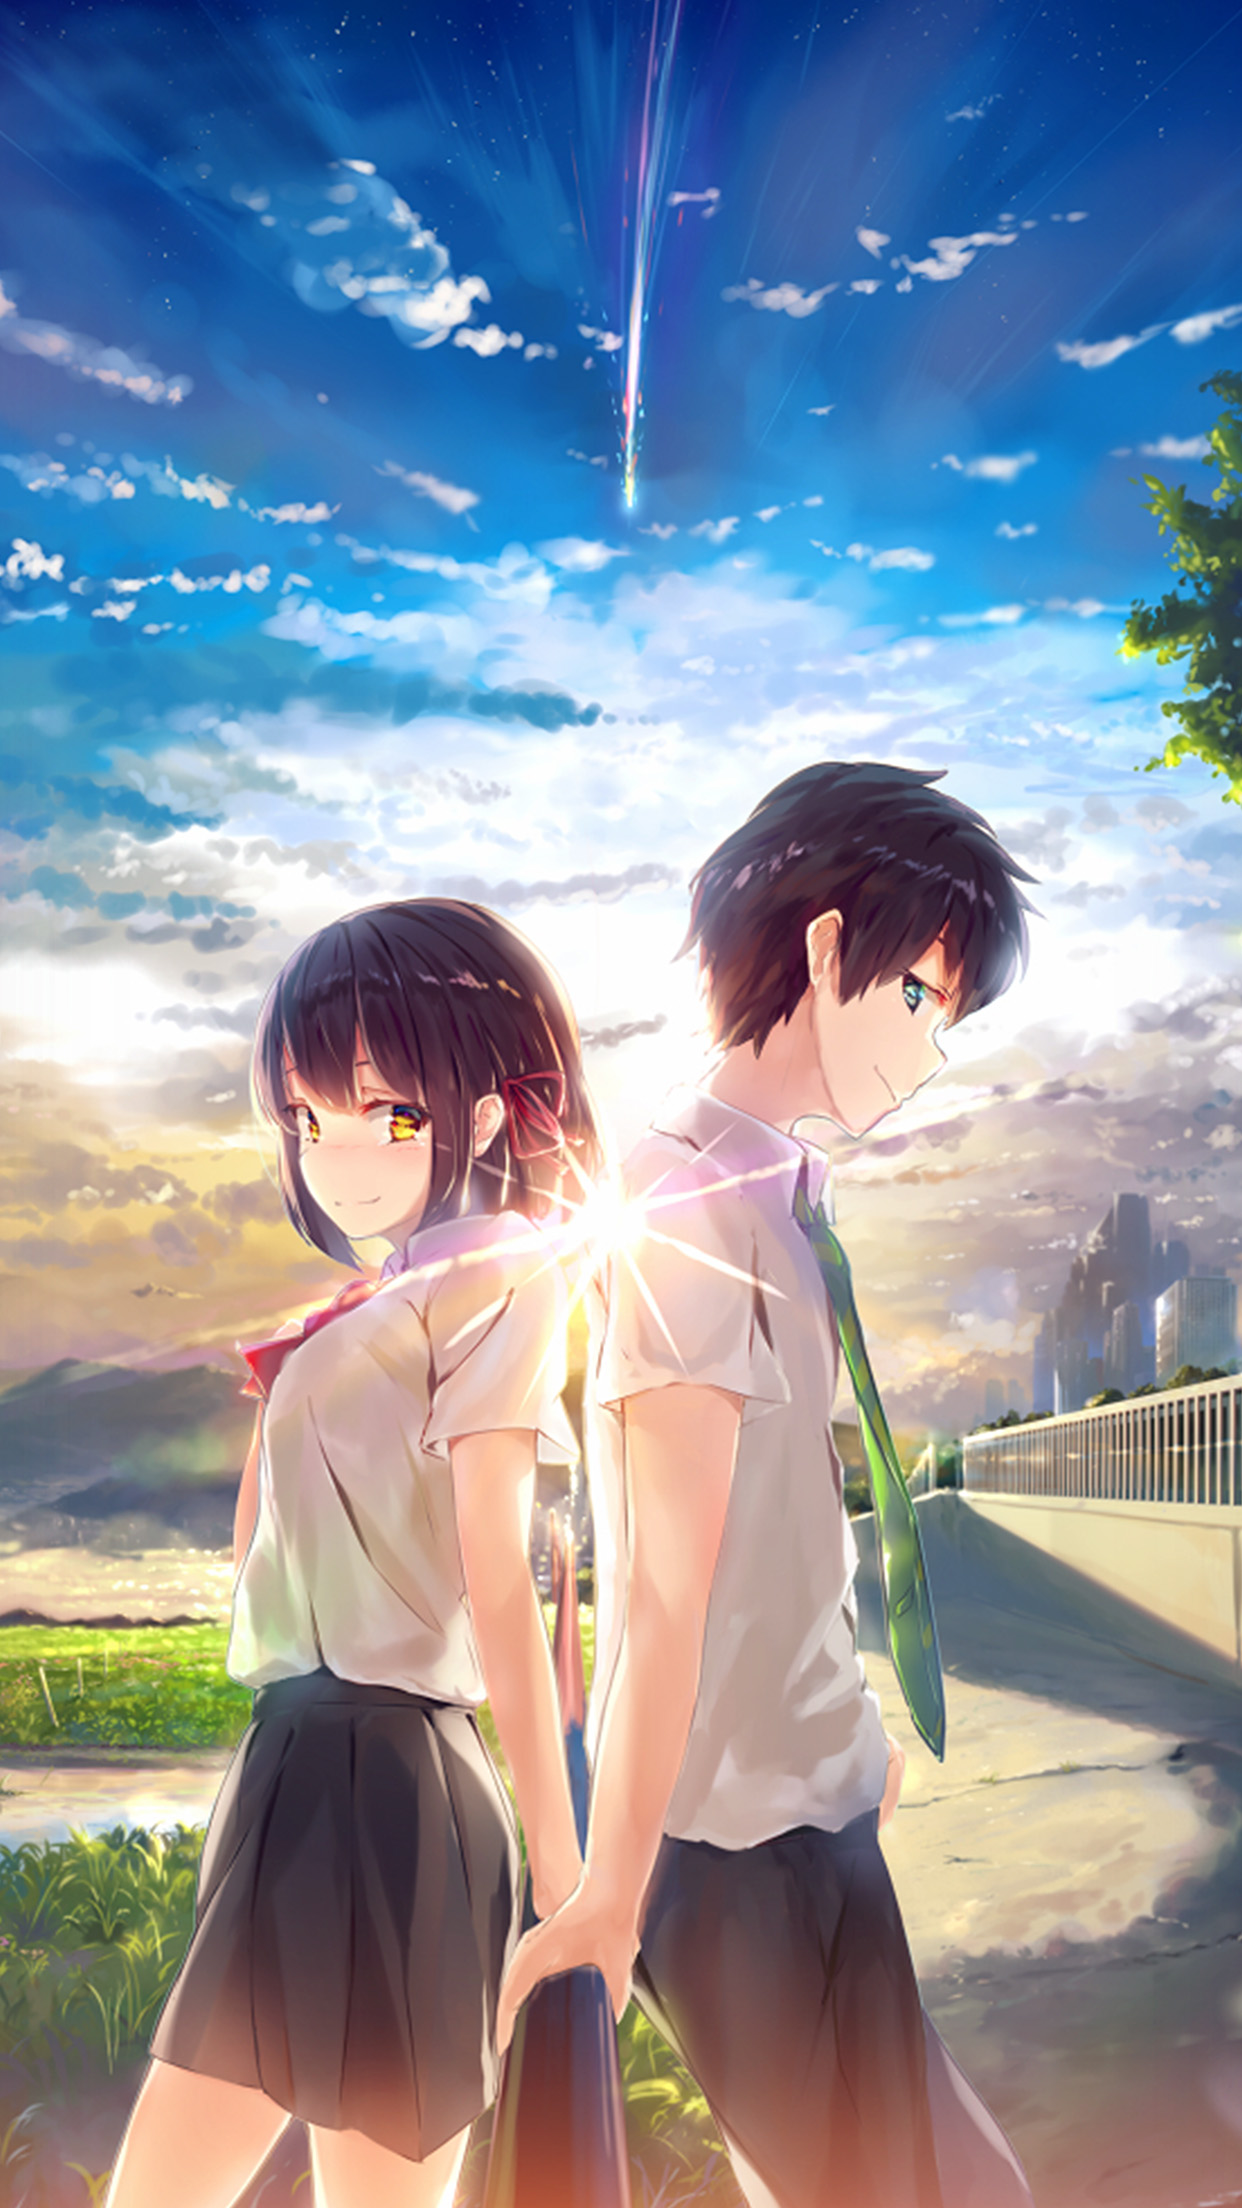 Car Boy Wallpaper Az03 Anime Yourname Sky Illustration Art Wallpaper